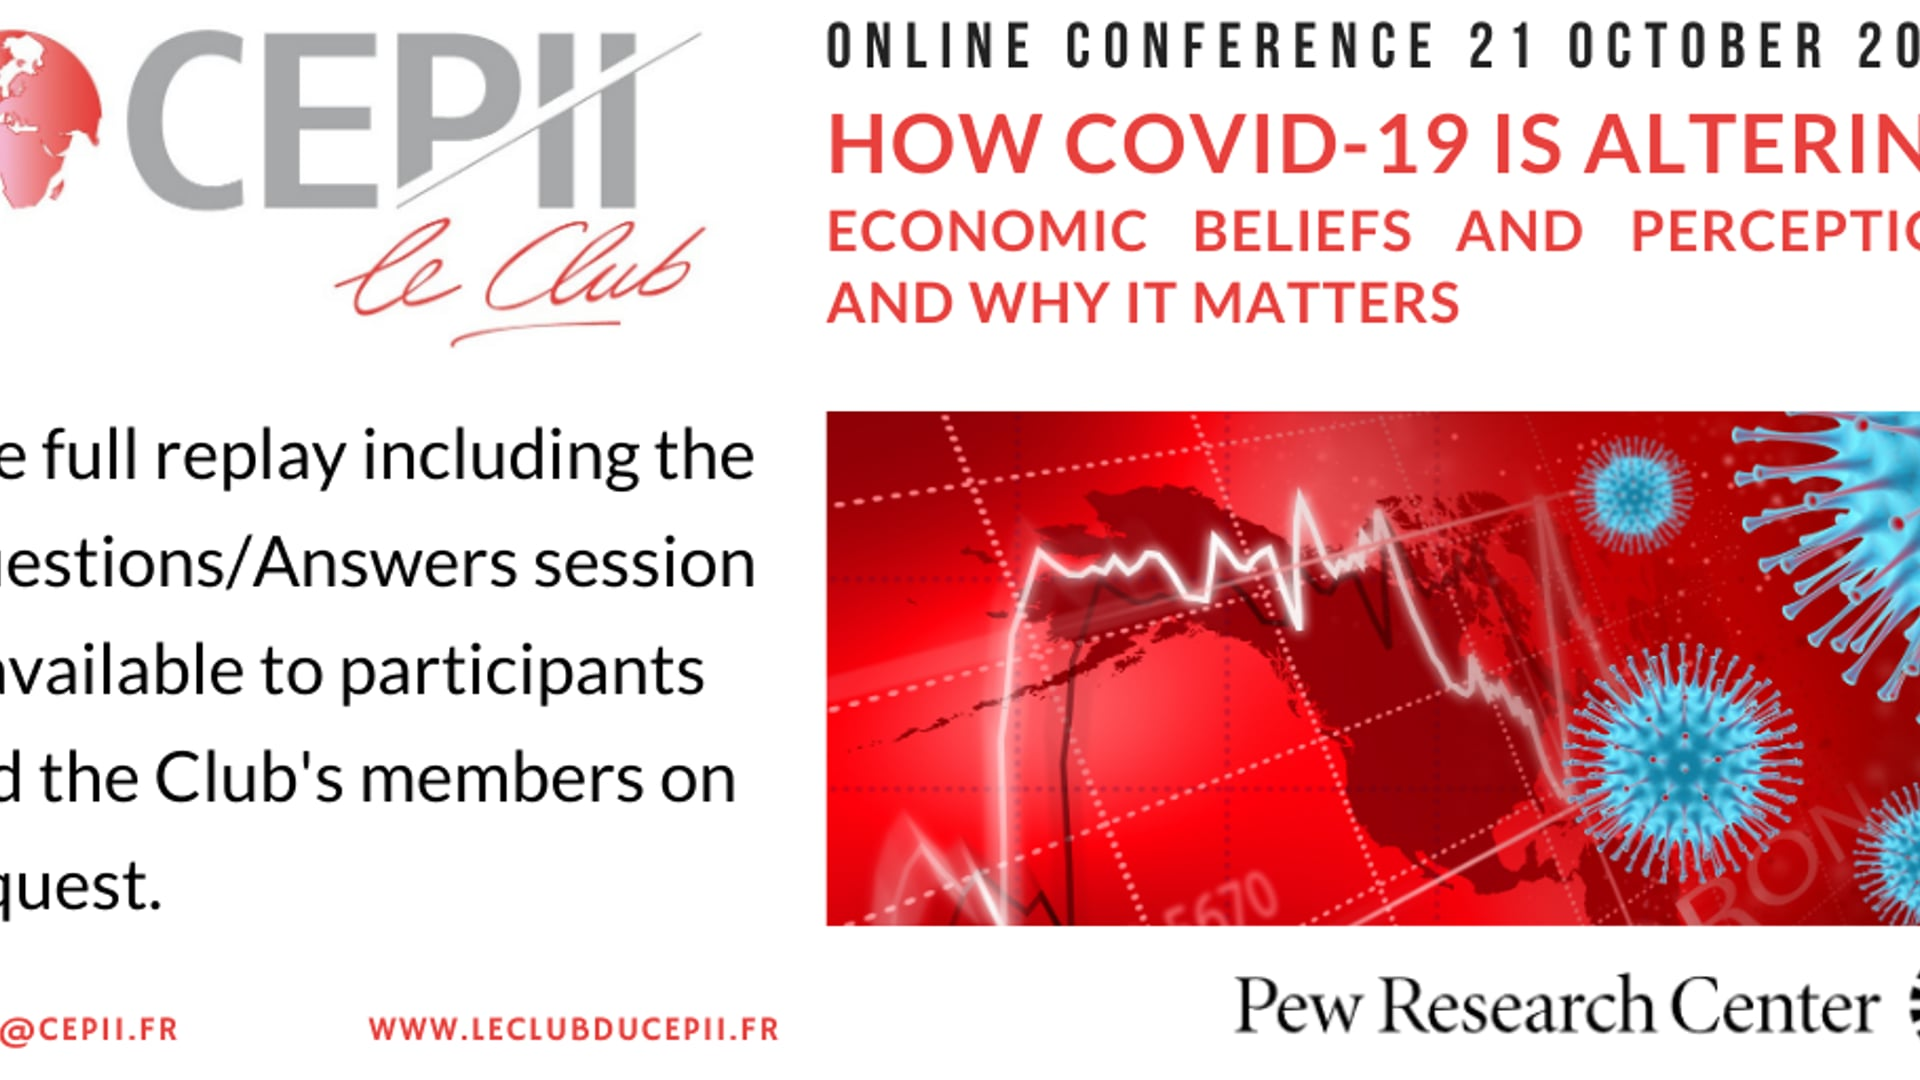 How Covid-19 is altering economic beliefs and perception - and why it matters